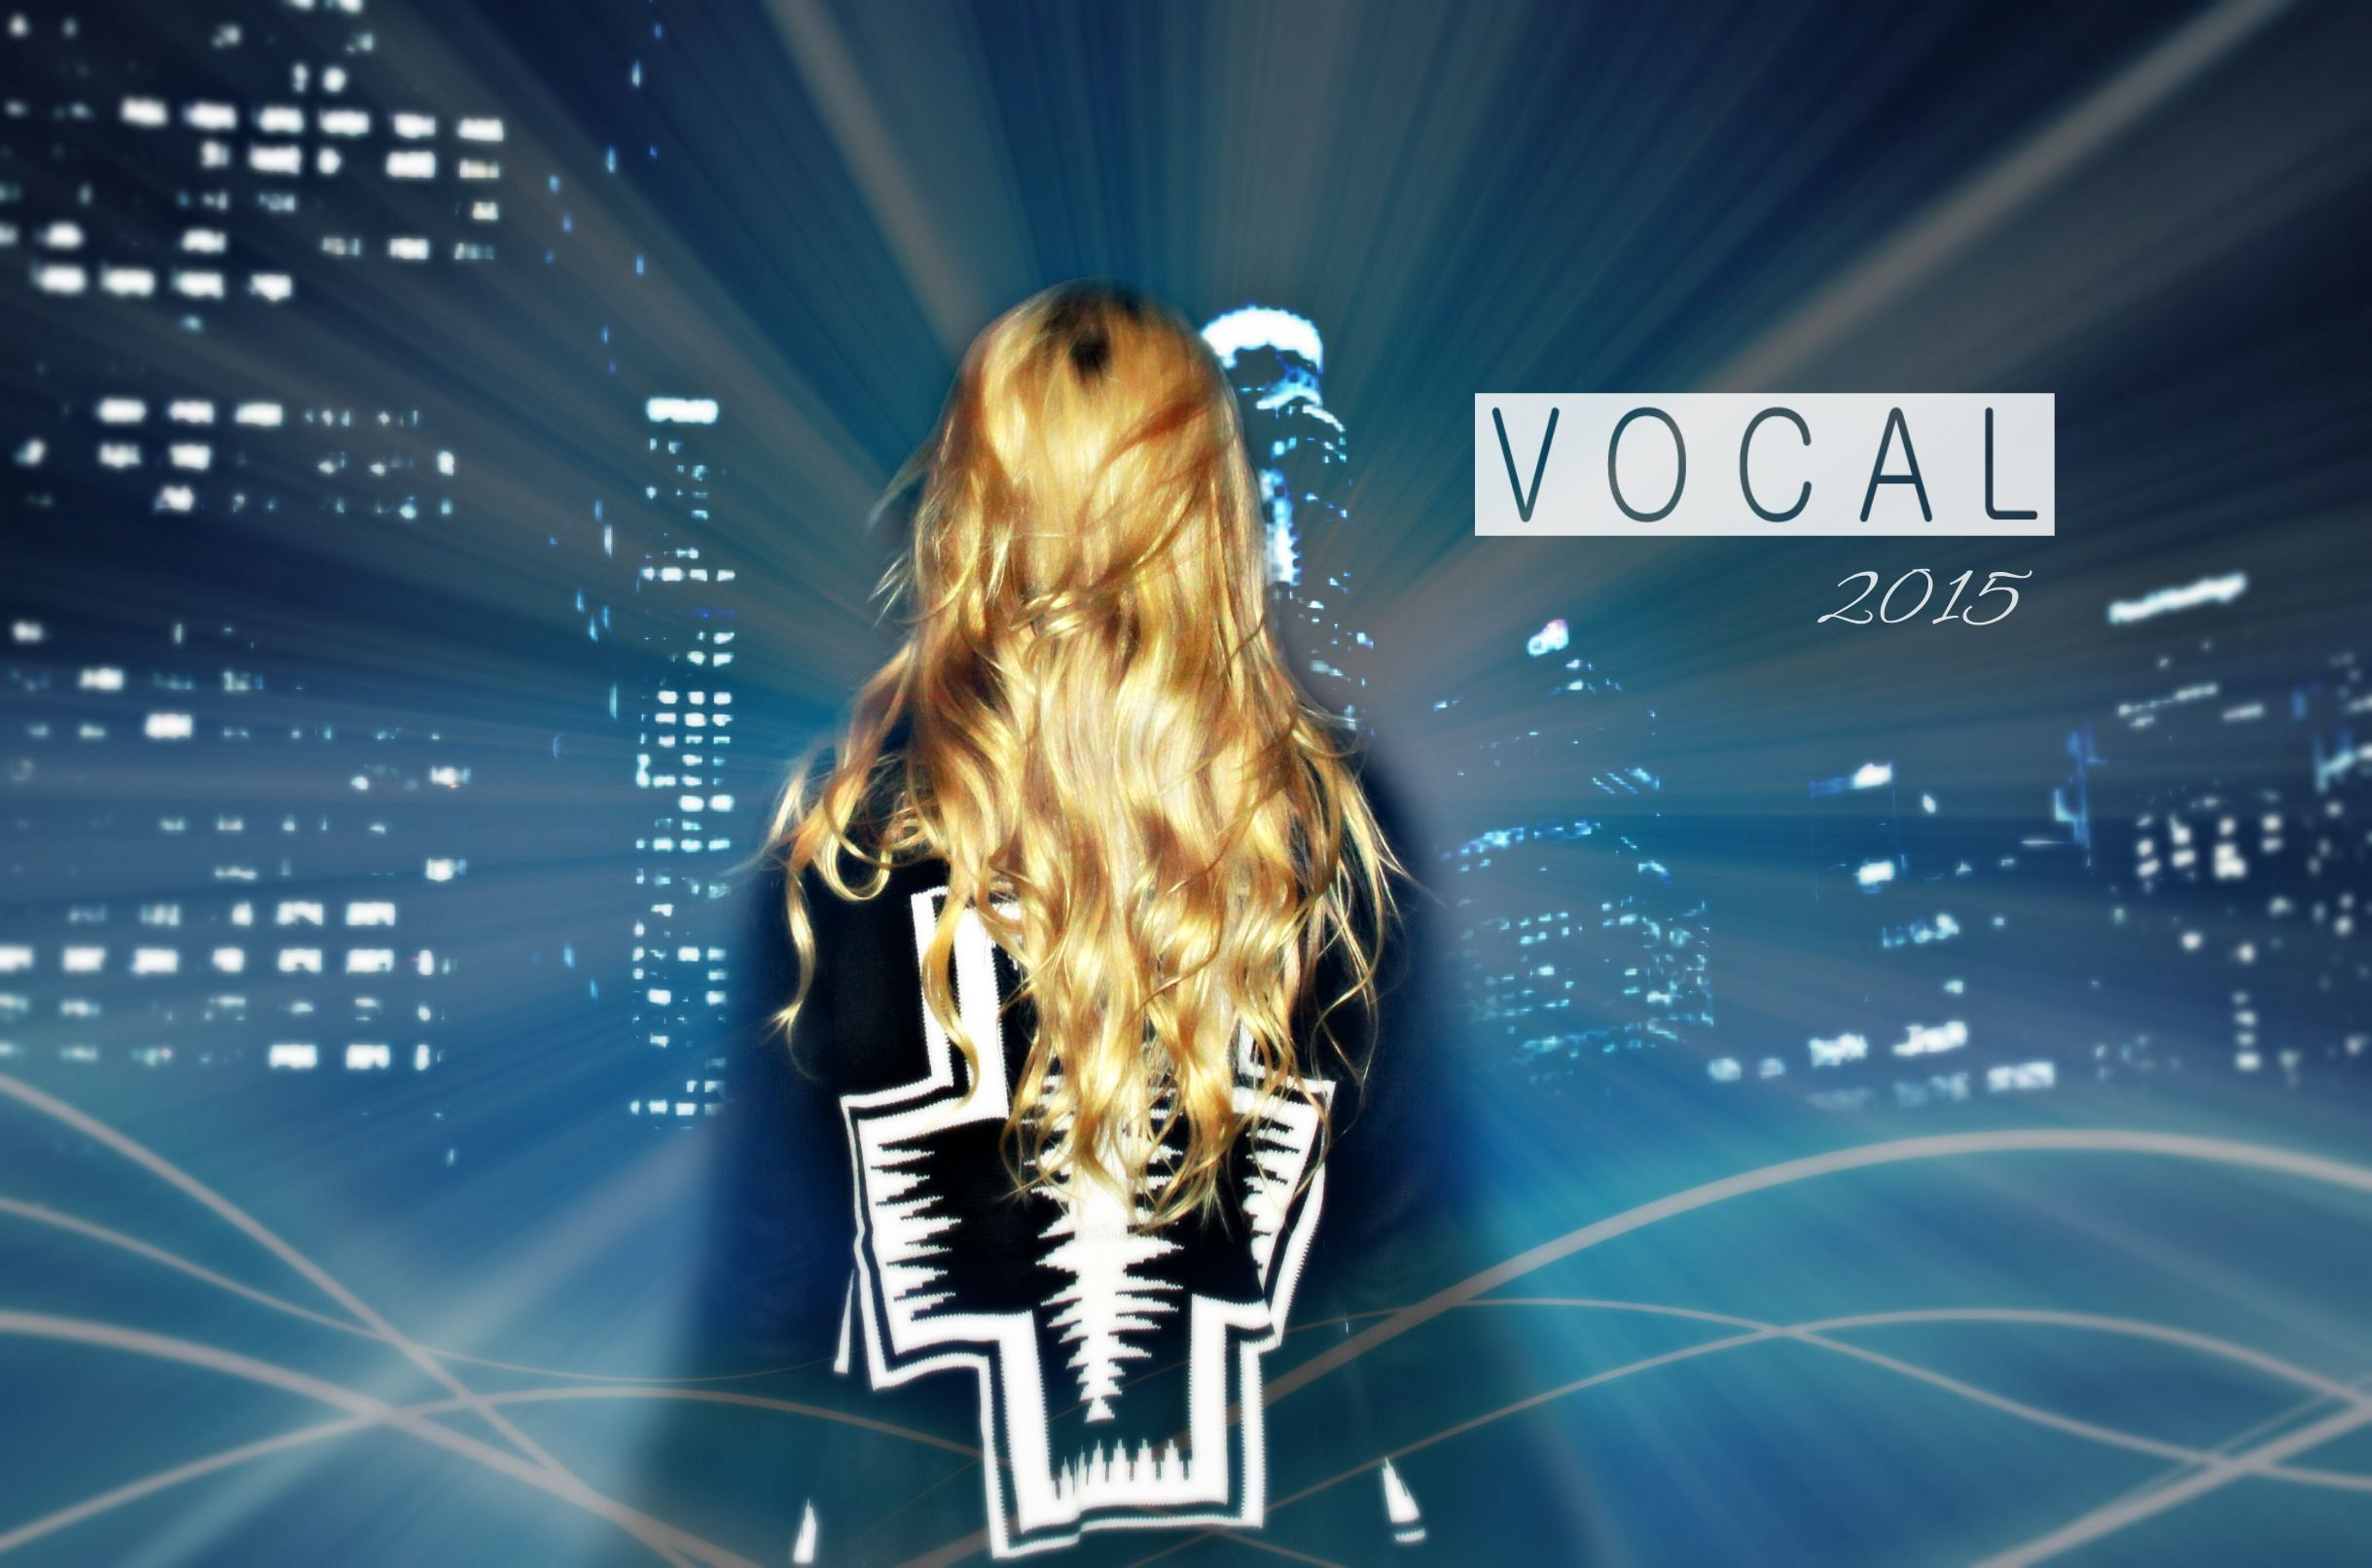 Vocal vocalapparel clothes fashion la style hot hotstyles